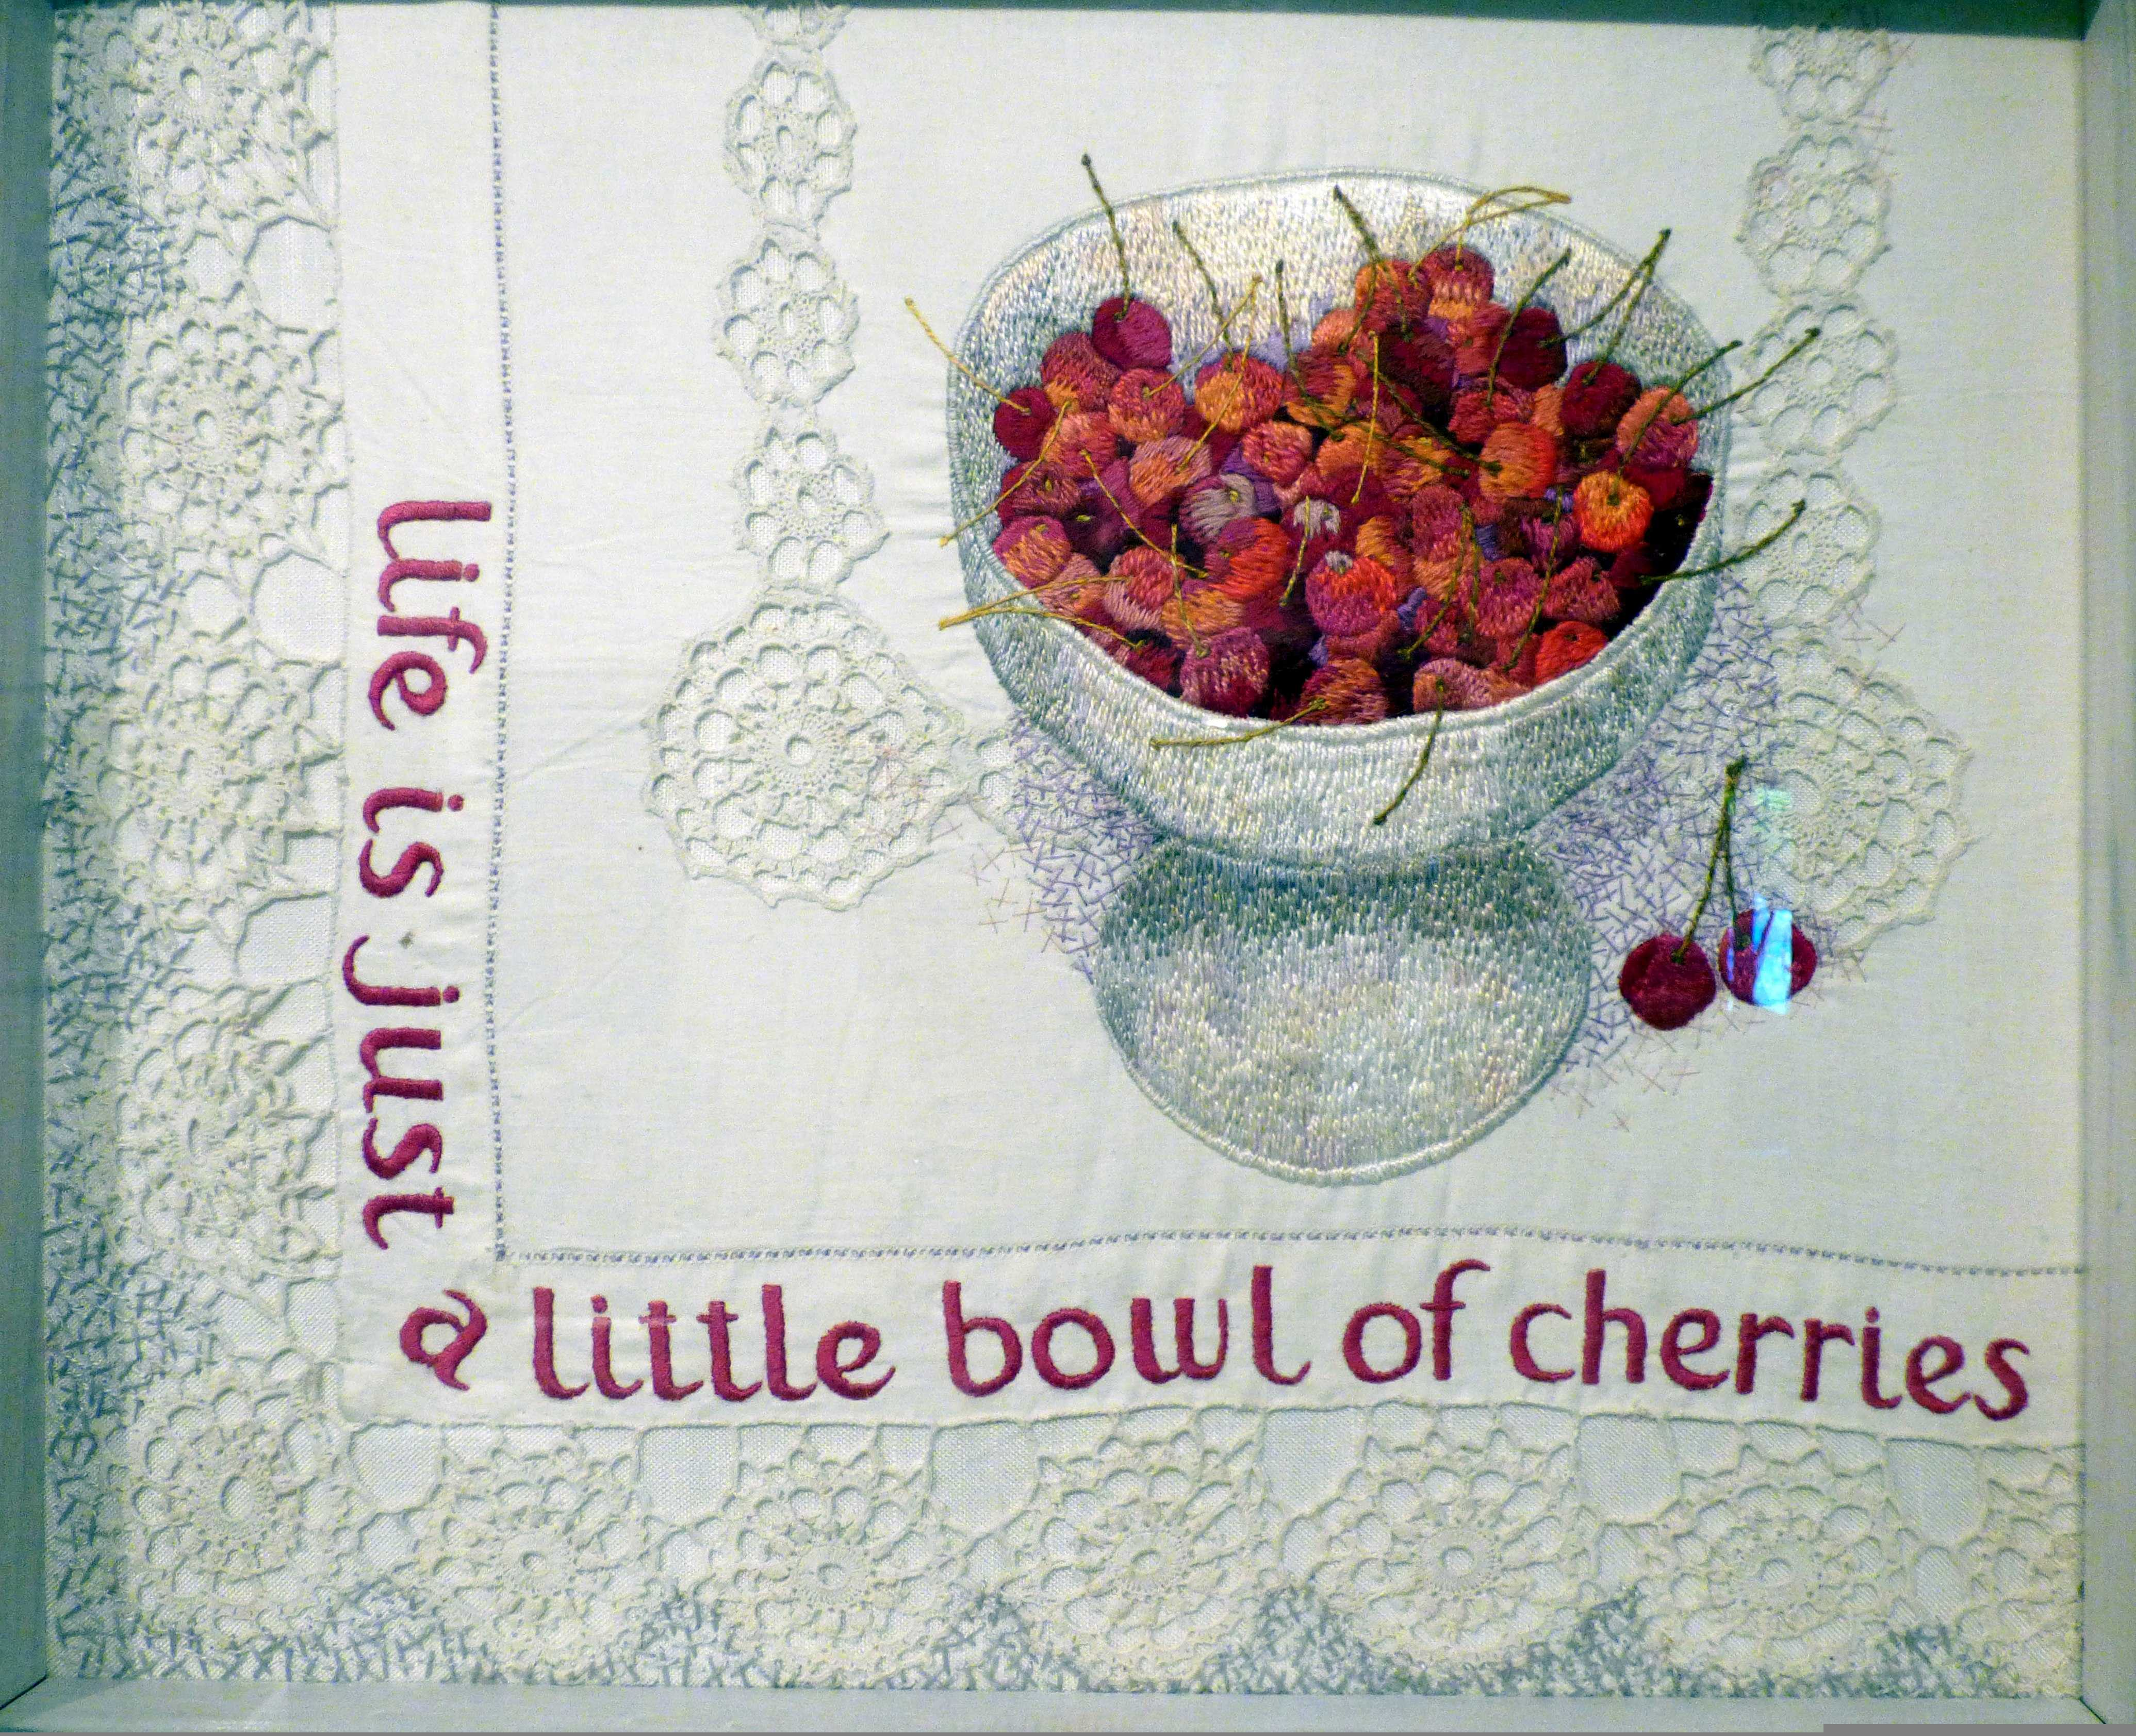 LIFE IS JUST A LITTLE BOWL OF CHERRIES by Audrey Walker, stitched textile, 1984